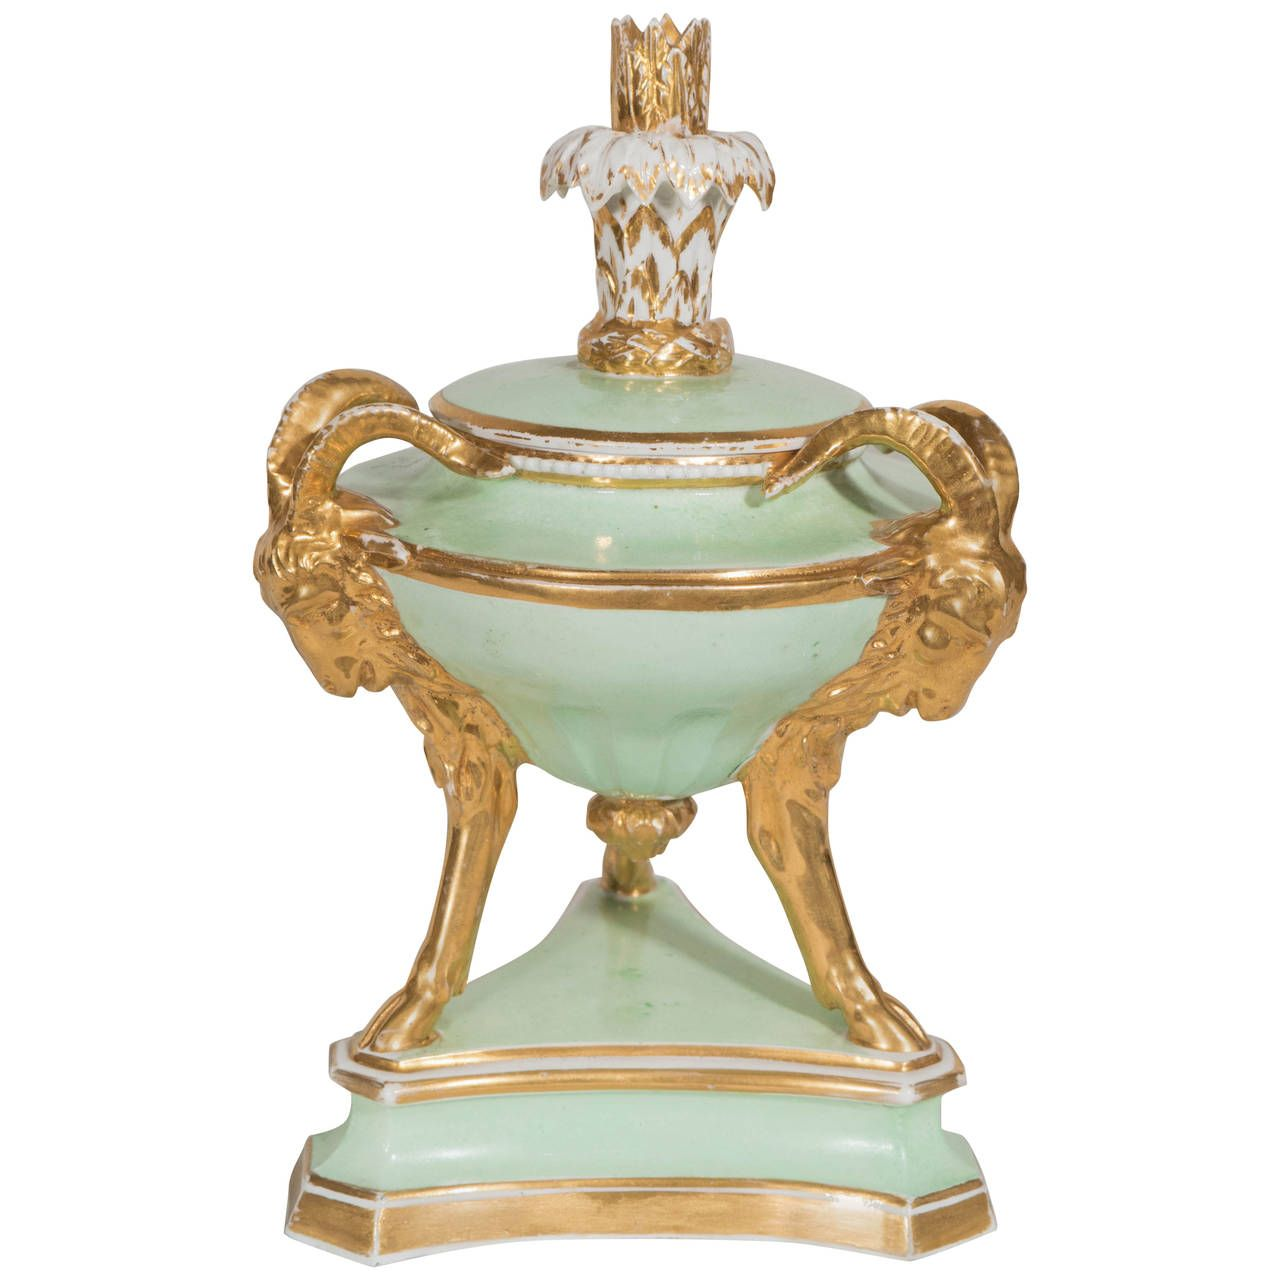 Early 19th Century Derby Pastille Burner in Celadon and Gold